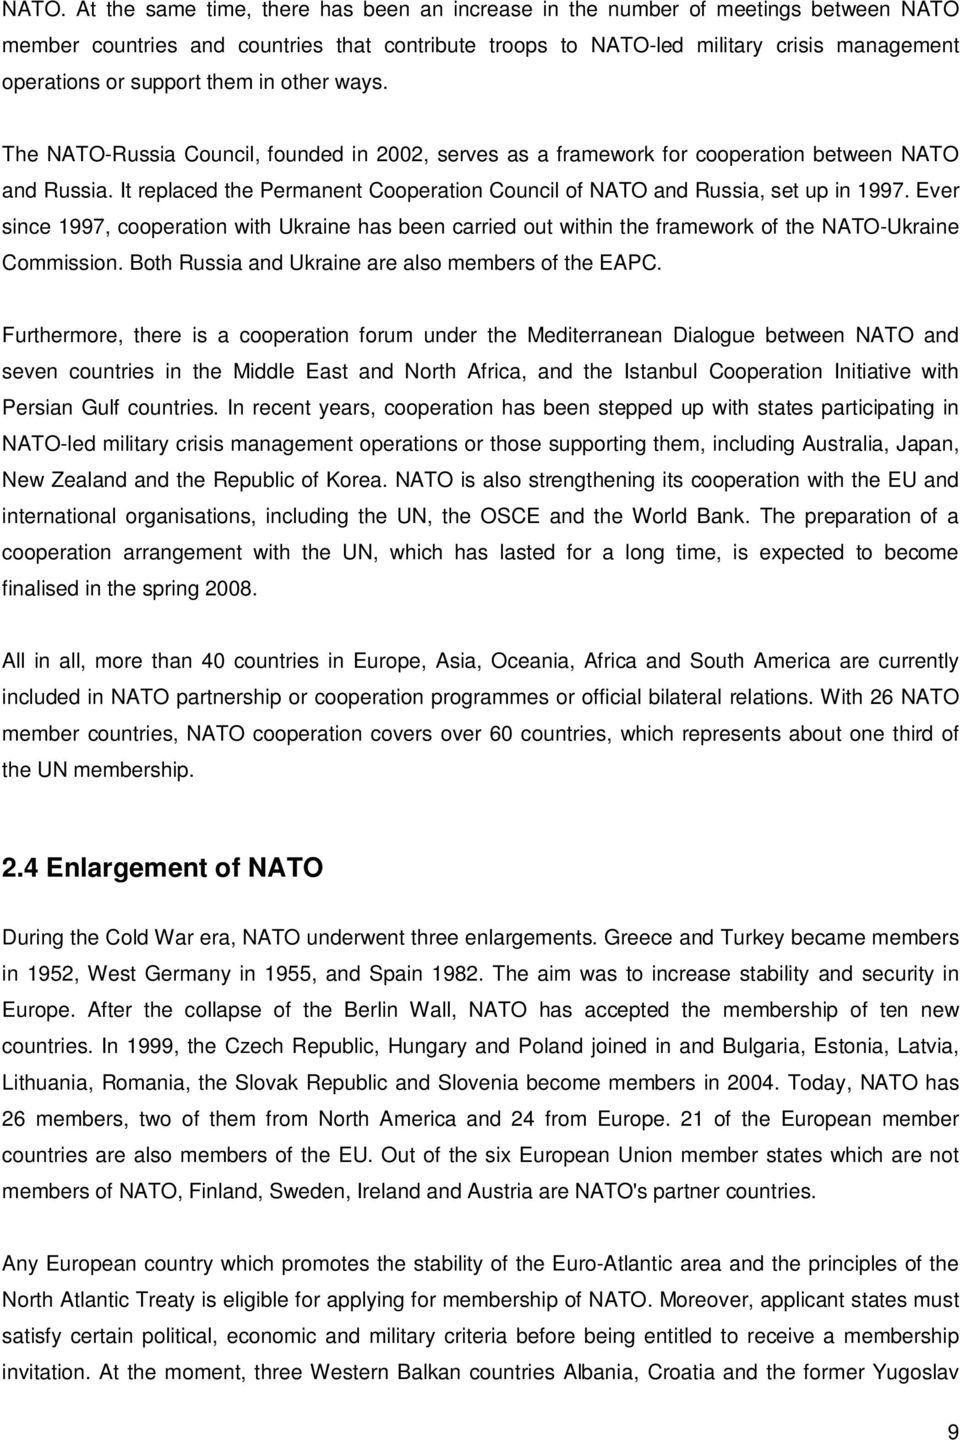 It replaced the Permanent Cooperation Council of NATO and Russia, set up in 1997. Ever since 1997, cooperation with Ukraine has been carried out within the framework of the NATO-Ukraine Commission.